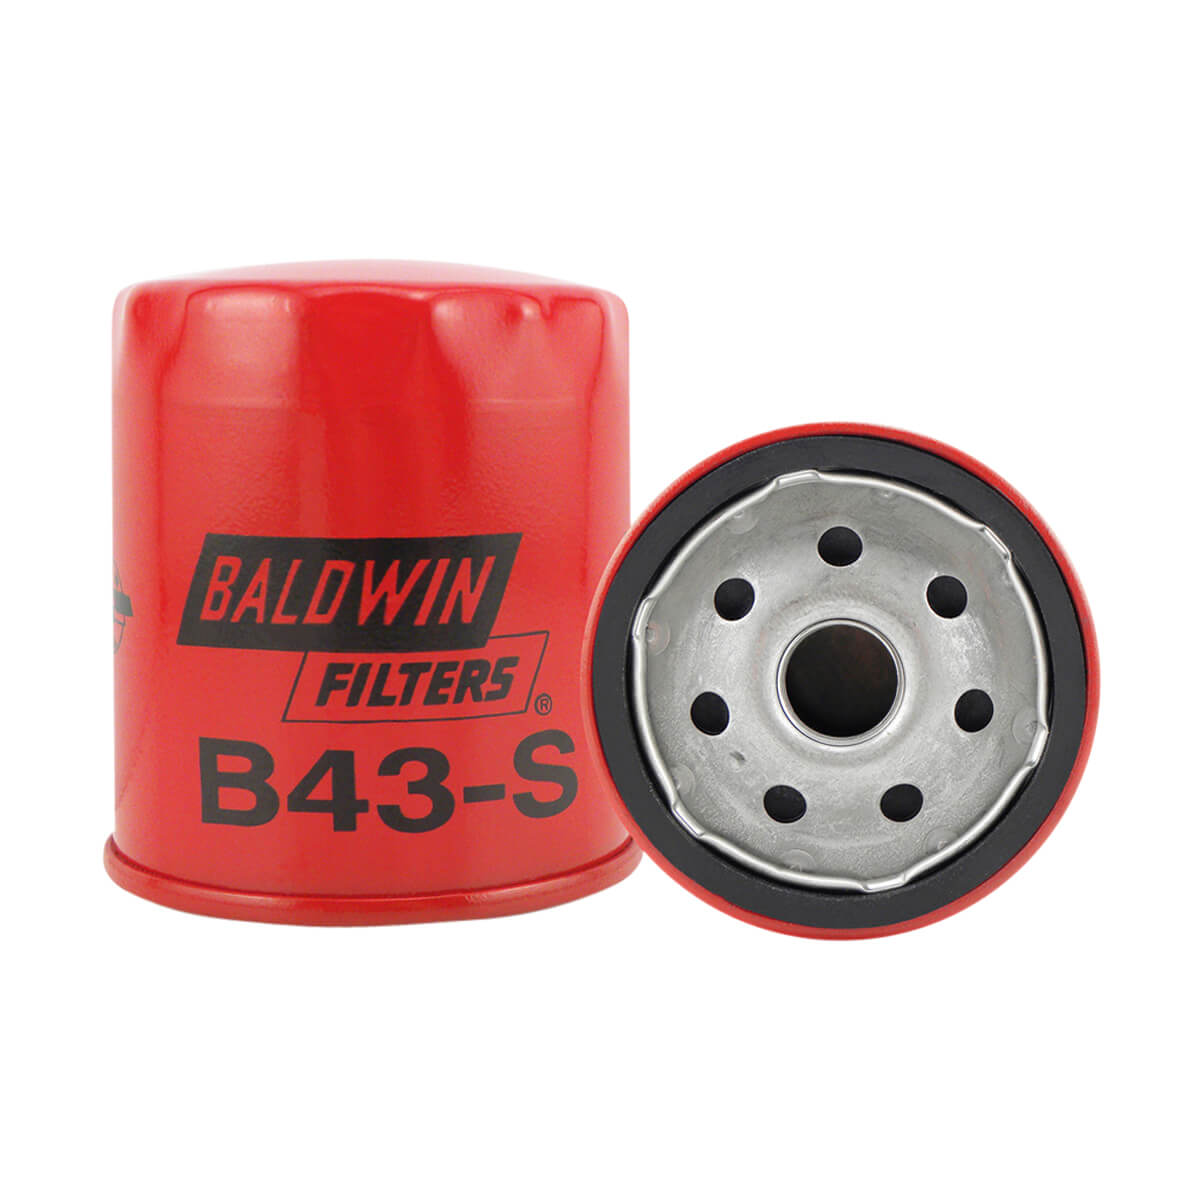 Baldwin Lube B43-S Filter